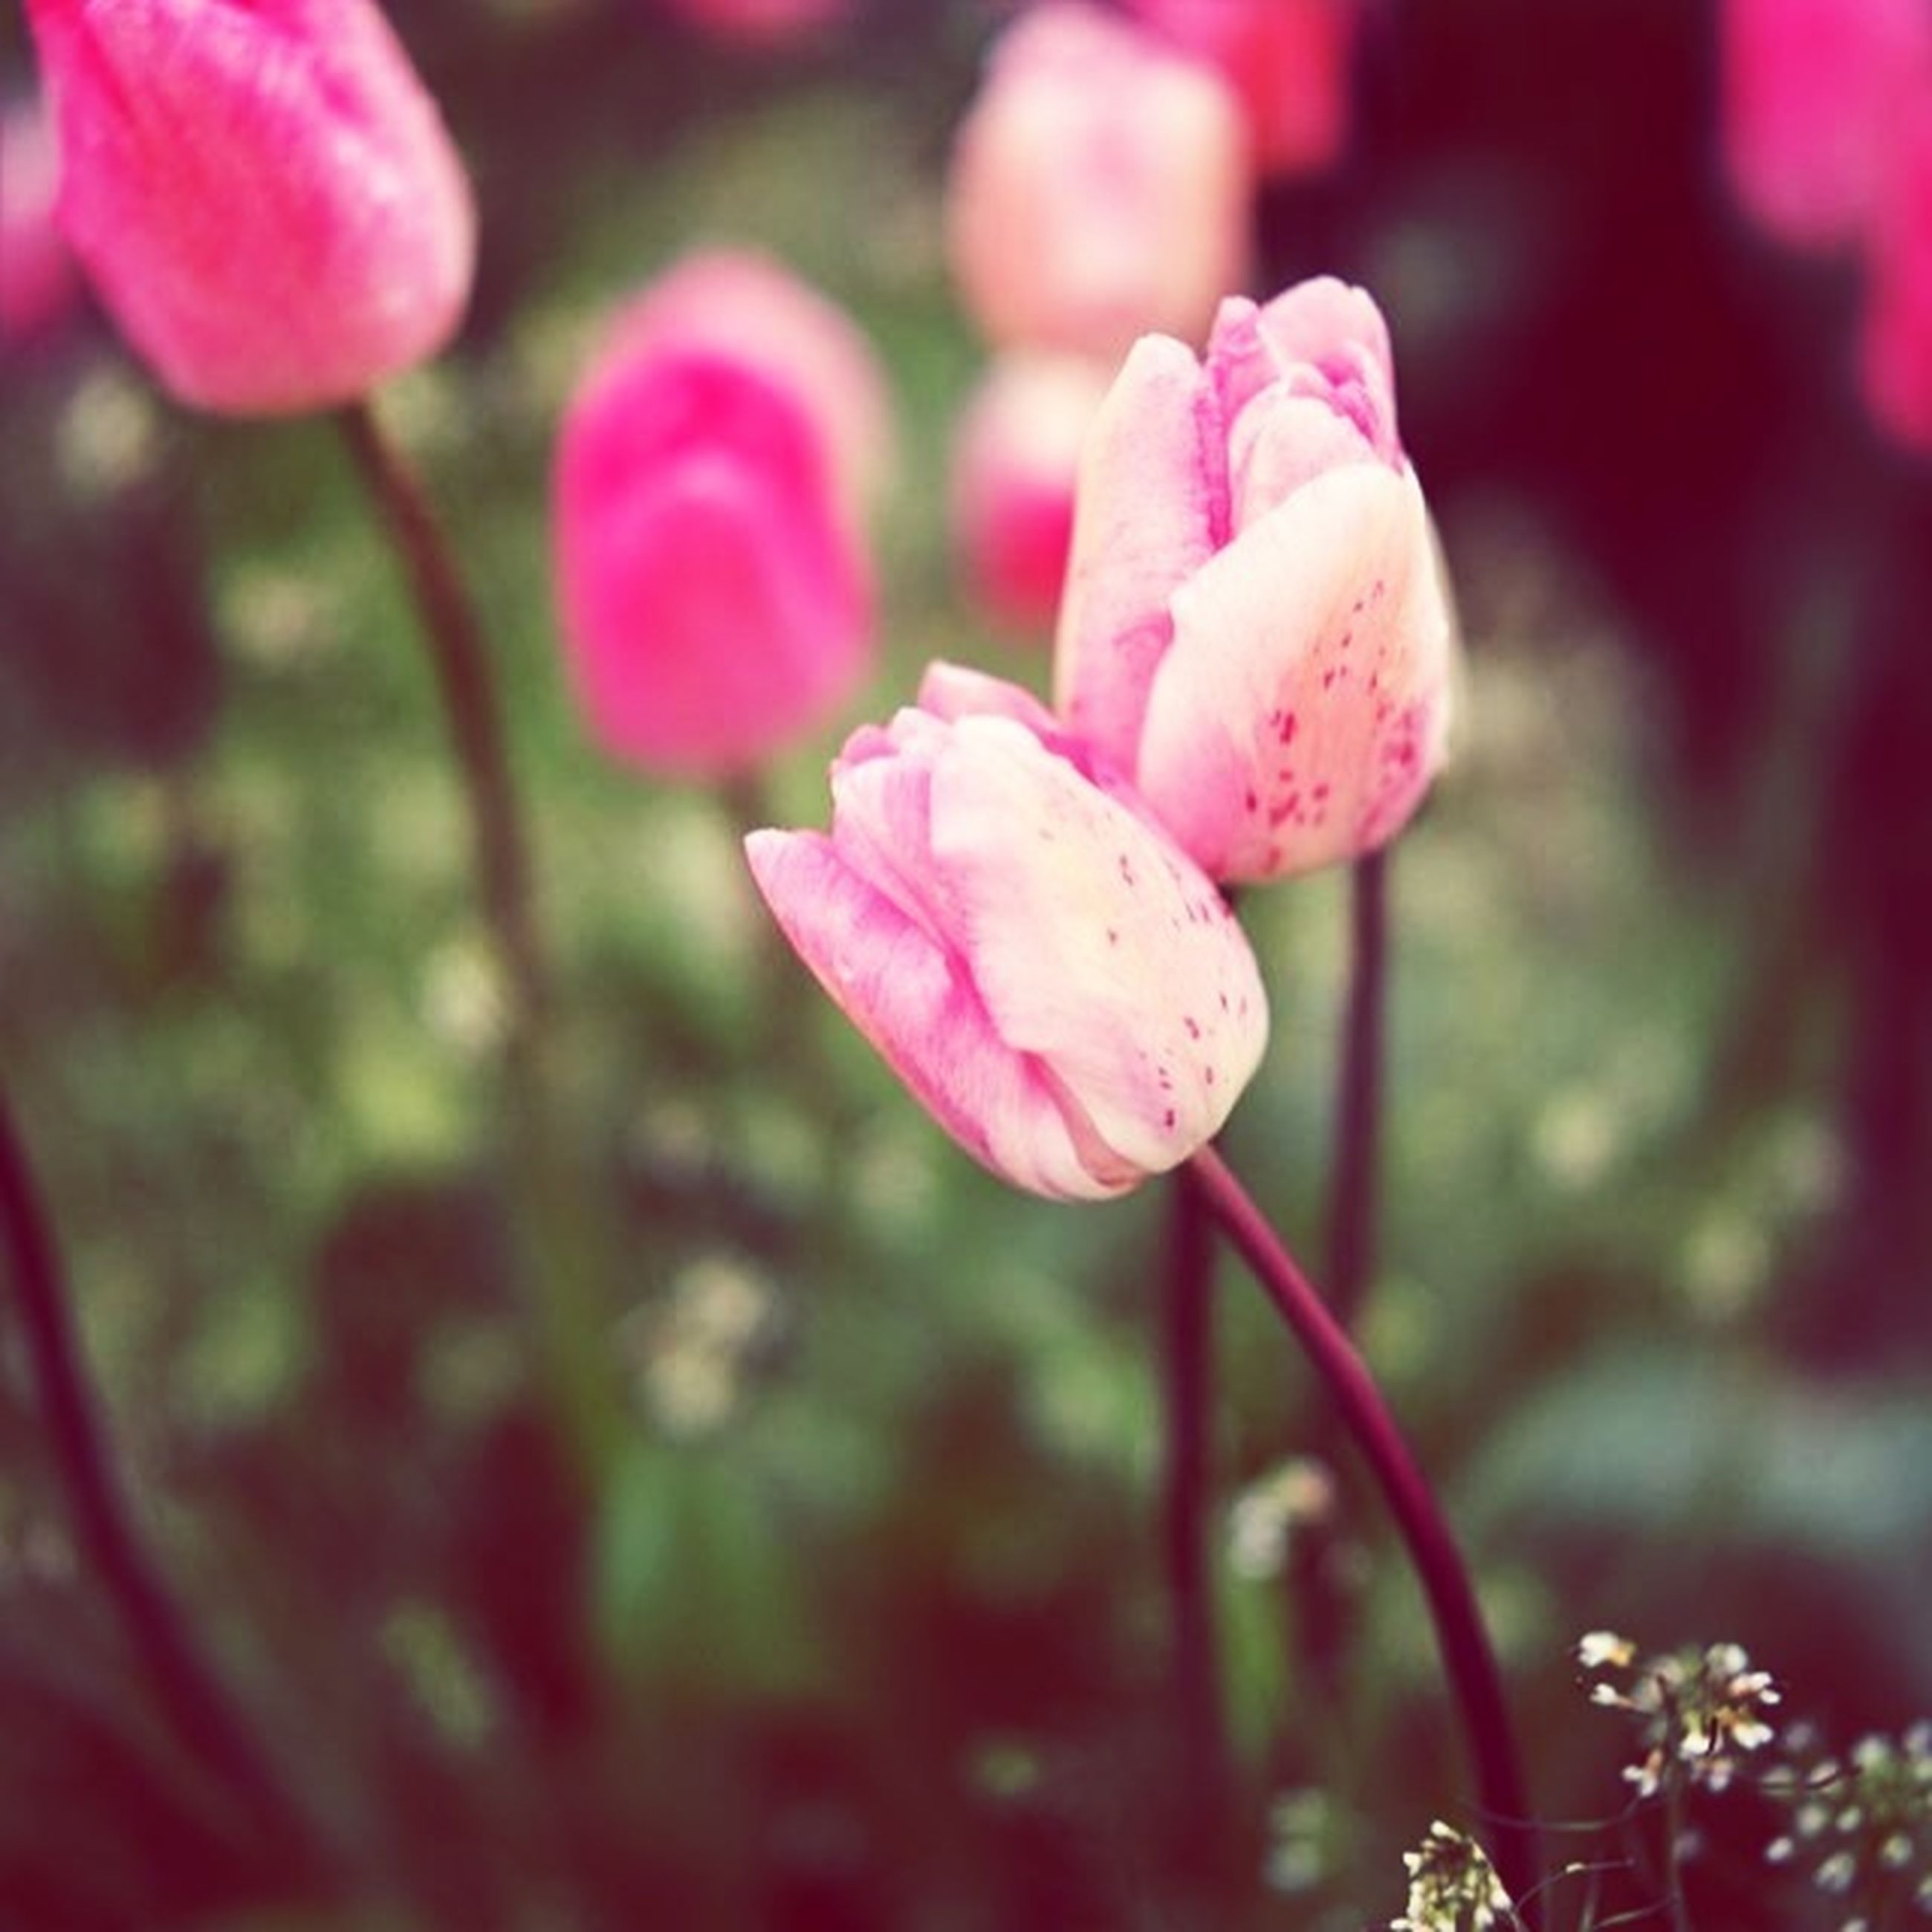 flower, freshness, fragility, petal, growth, focus on foreground, close-up, beauty in nature, flower head, pink color, nature, plant, blooming, stem, bud, in bloom, selective focus, day, drop, outdoors